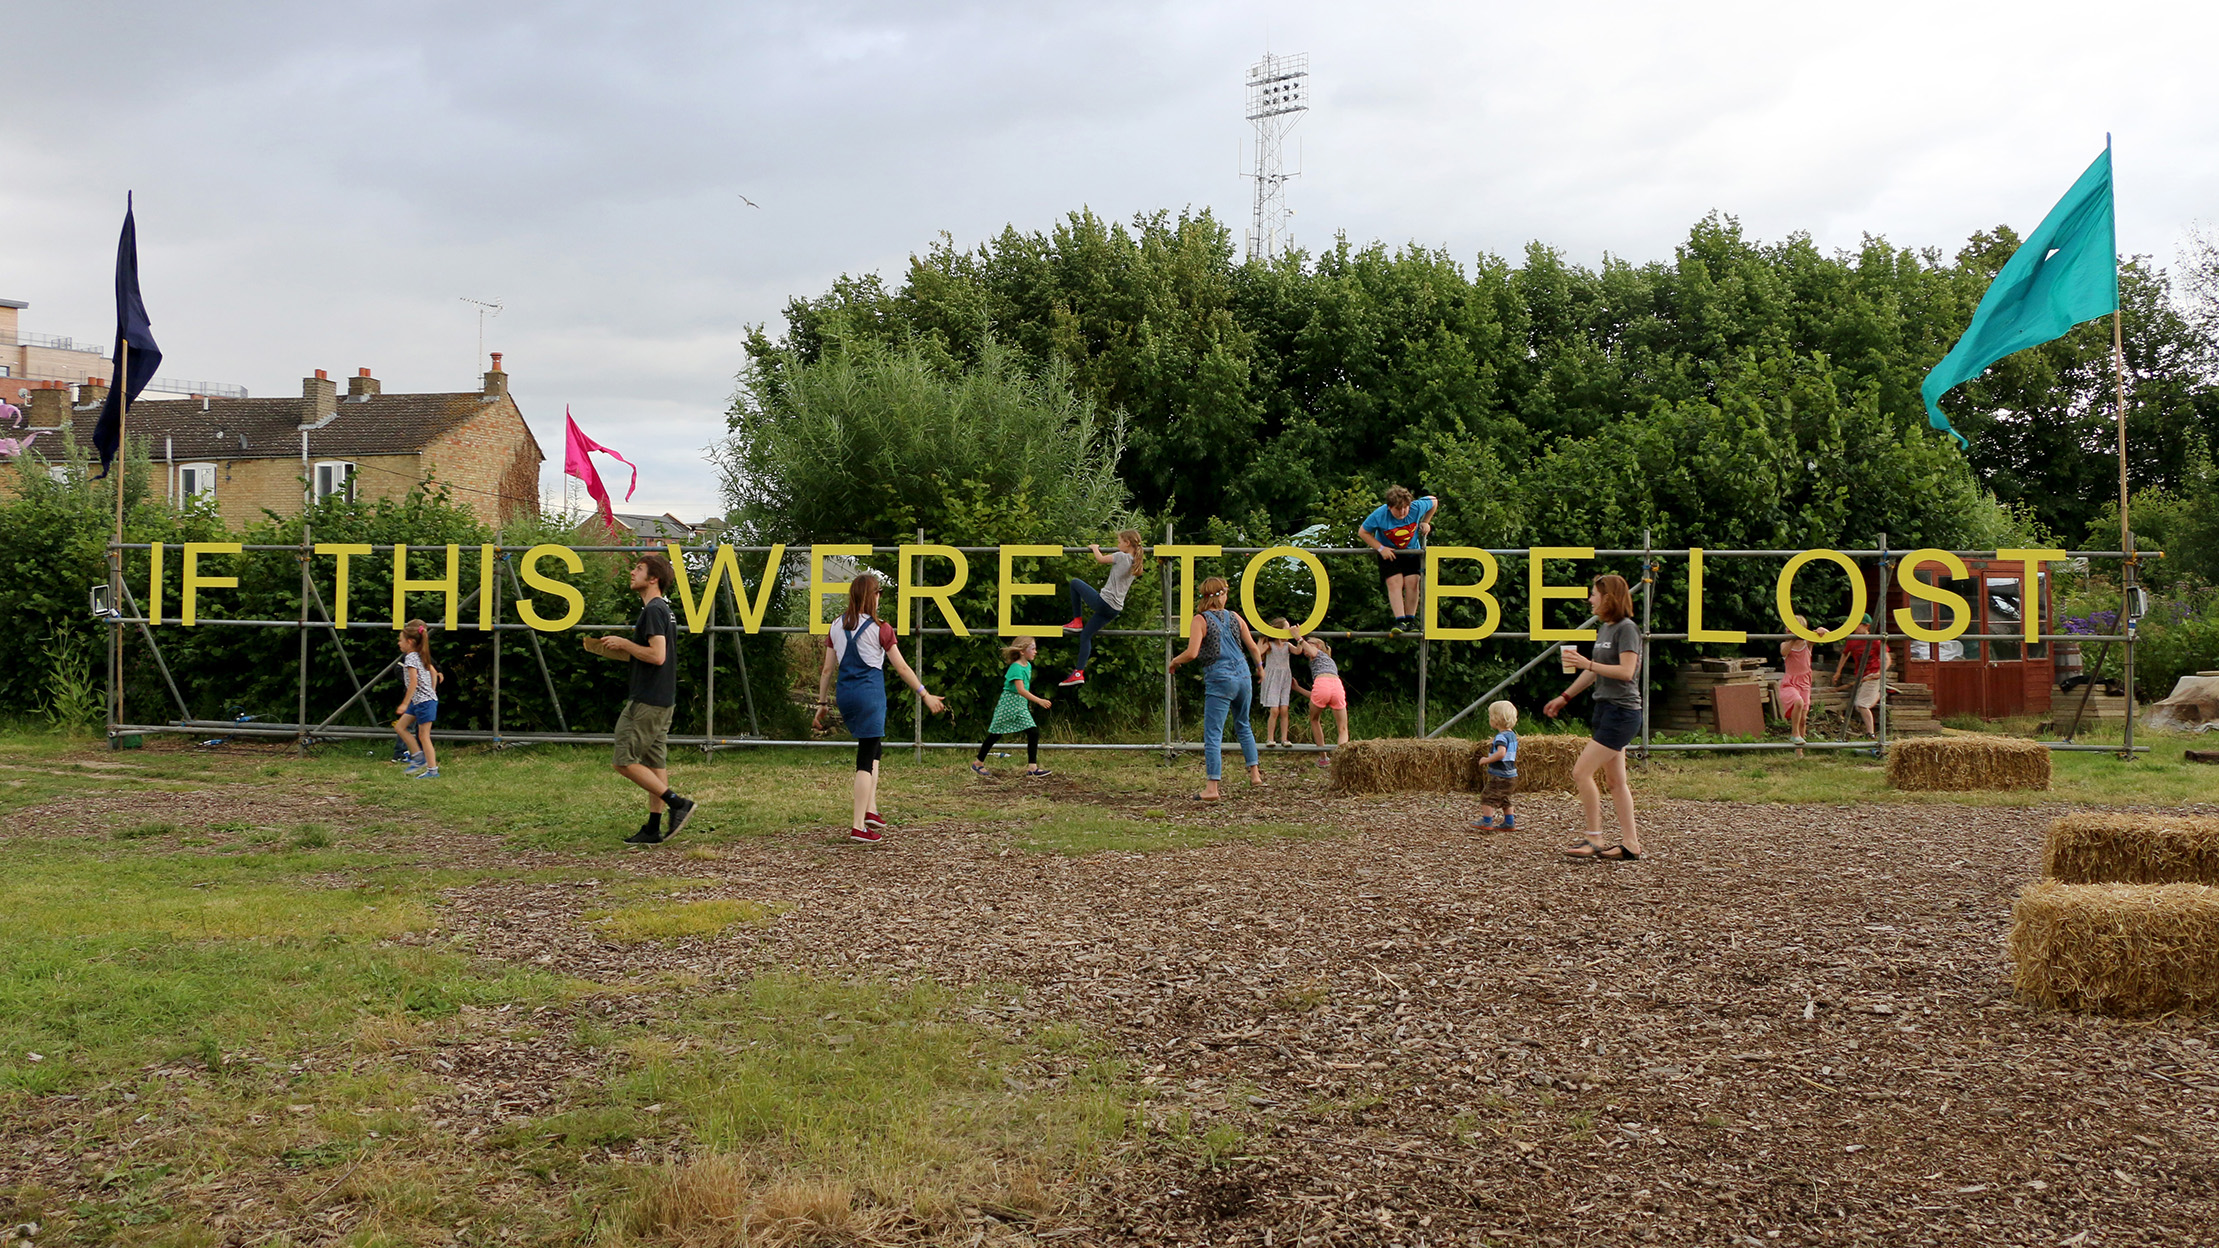 Jessie Brennan, If This Were to Be Lost, 2016, painted birch plywood on scaffold, 1.9 x 19 m, situated at The Green Backyard, Peterborough. Photograph by Jessie Brennan